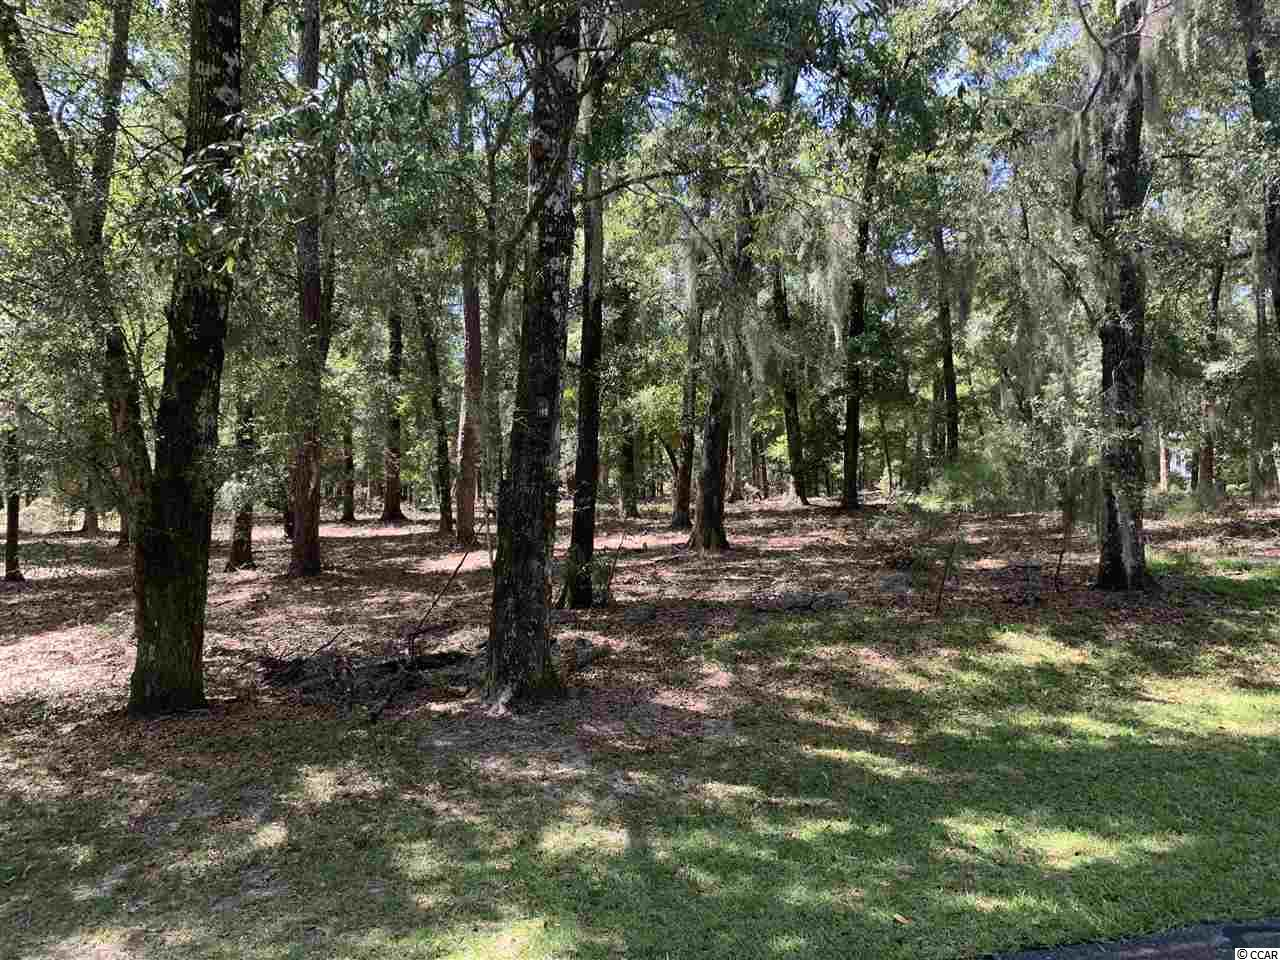 Build your dream home in the Estate section of The Reserve in Pawleys Island on this almost 2 acre home site with wooded secluded woods behind your home. The Reserve is one of the many special places Pawleys Island has to offer. Surrounding homes in the Estate section are gorgeous. Enjoy this gated community that offers a  Full service Marina, The Reserve Golf Club,and access to Litchfield By the Sea.